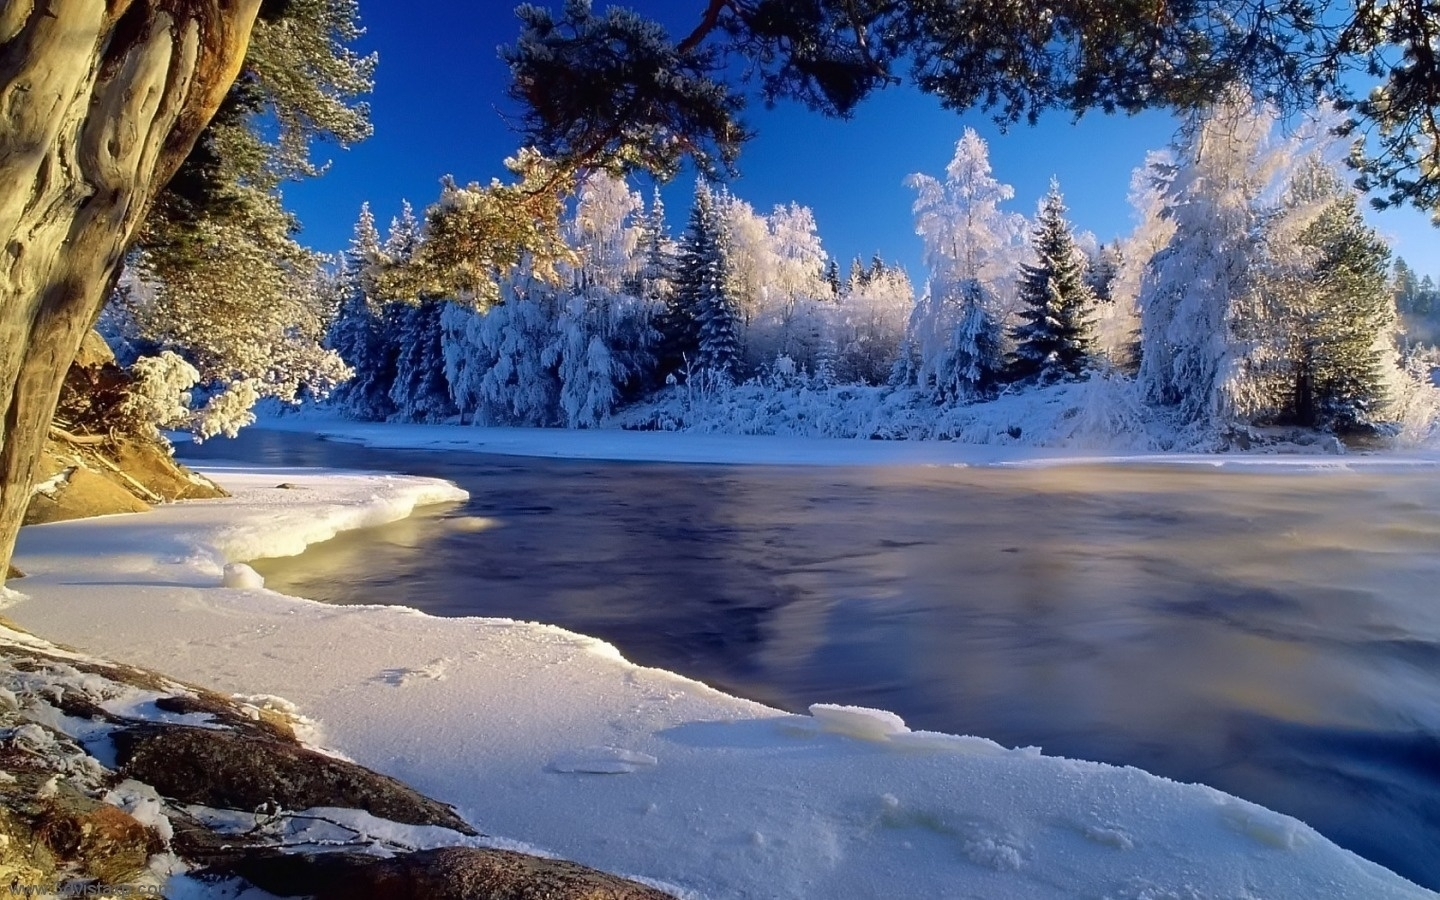 45783 download wallpaper Landscape, Winter, Rivers screensavers and pictures for free